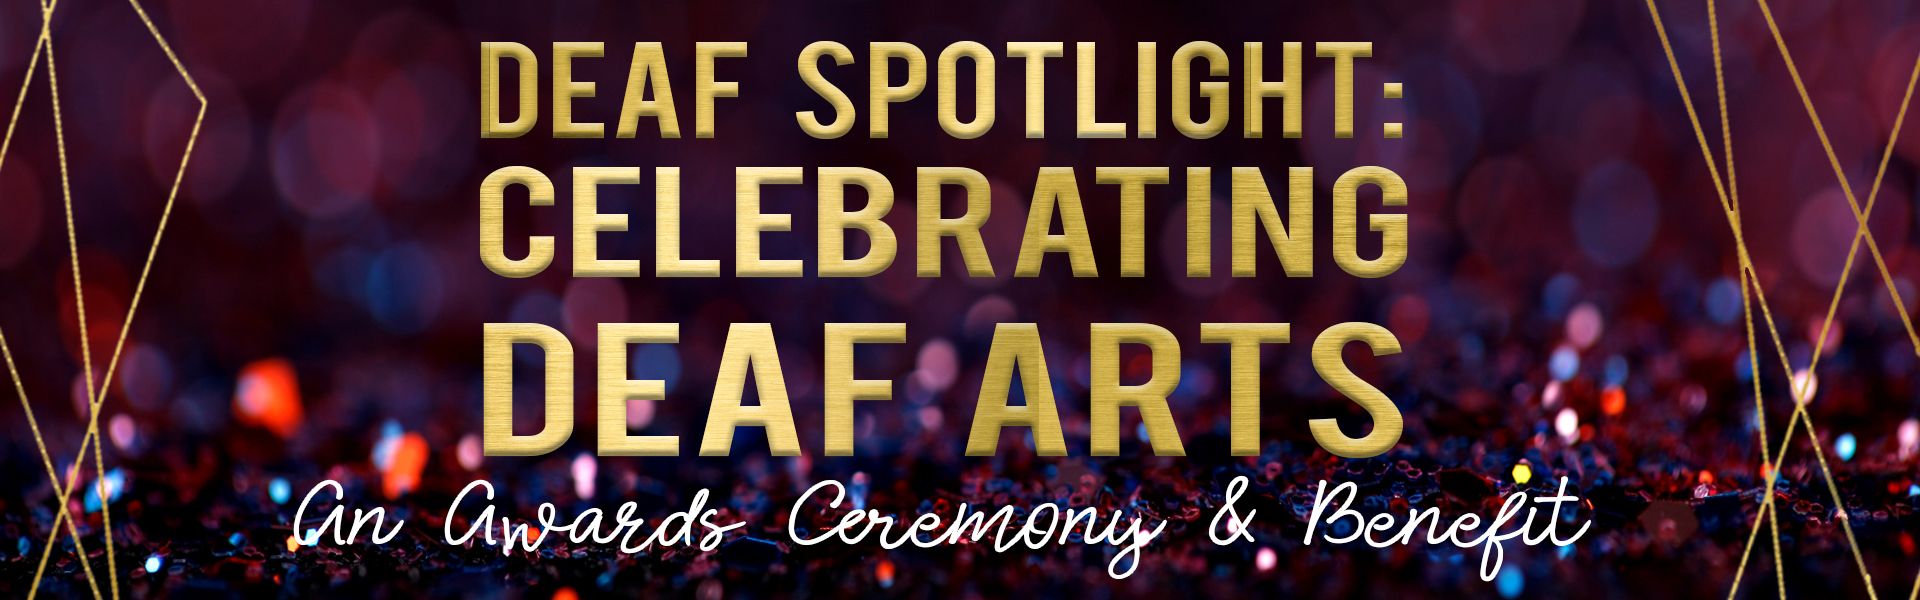 Deaf Spotlight: Celebrating Deaf Arts Poster